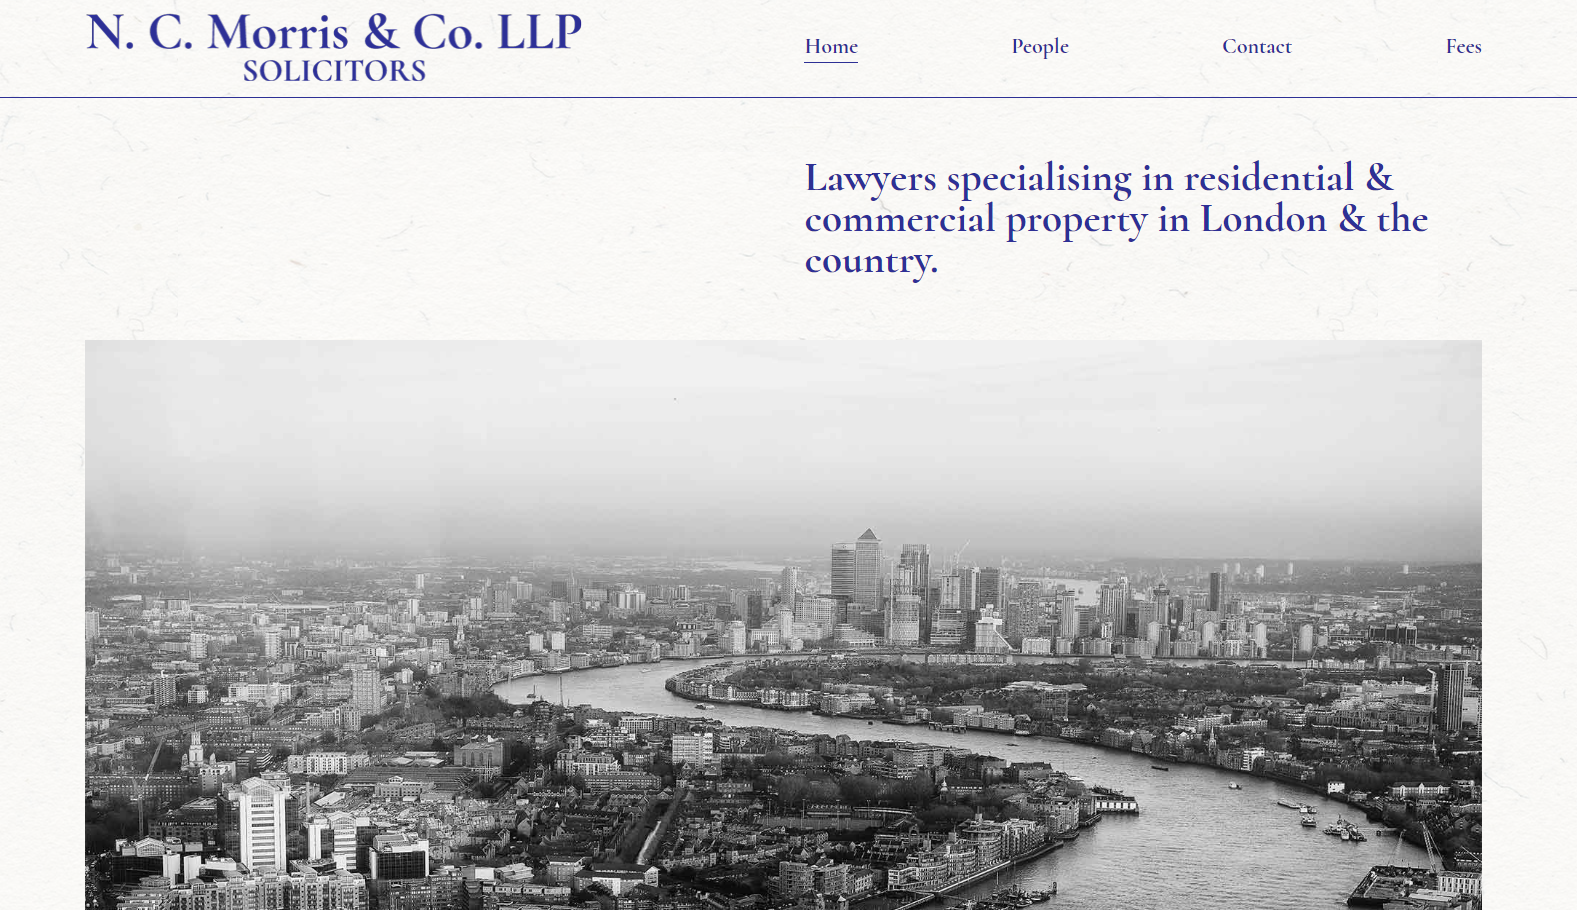 Preview of the N.C. Morris LLP website home page.